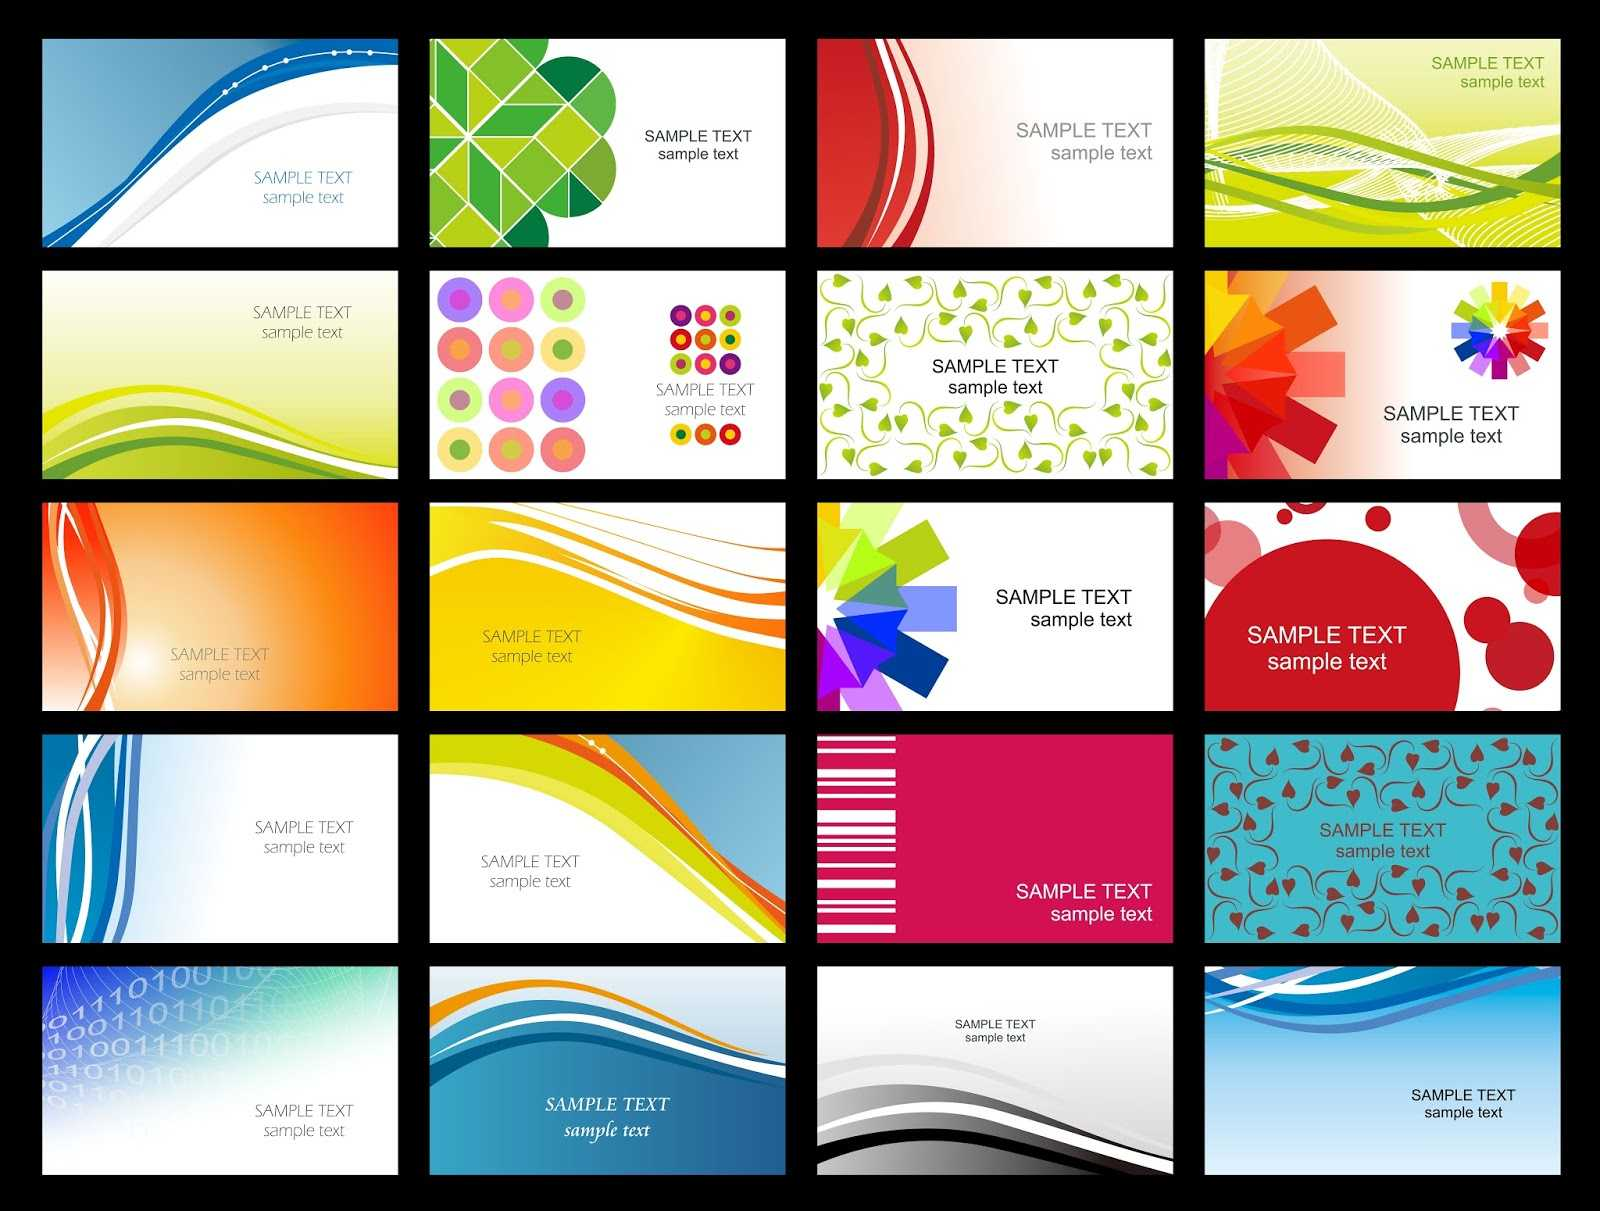 Printable Business Card Template - Business Card Tips Inside Free Template Business Cards To Print